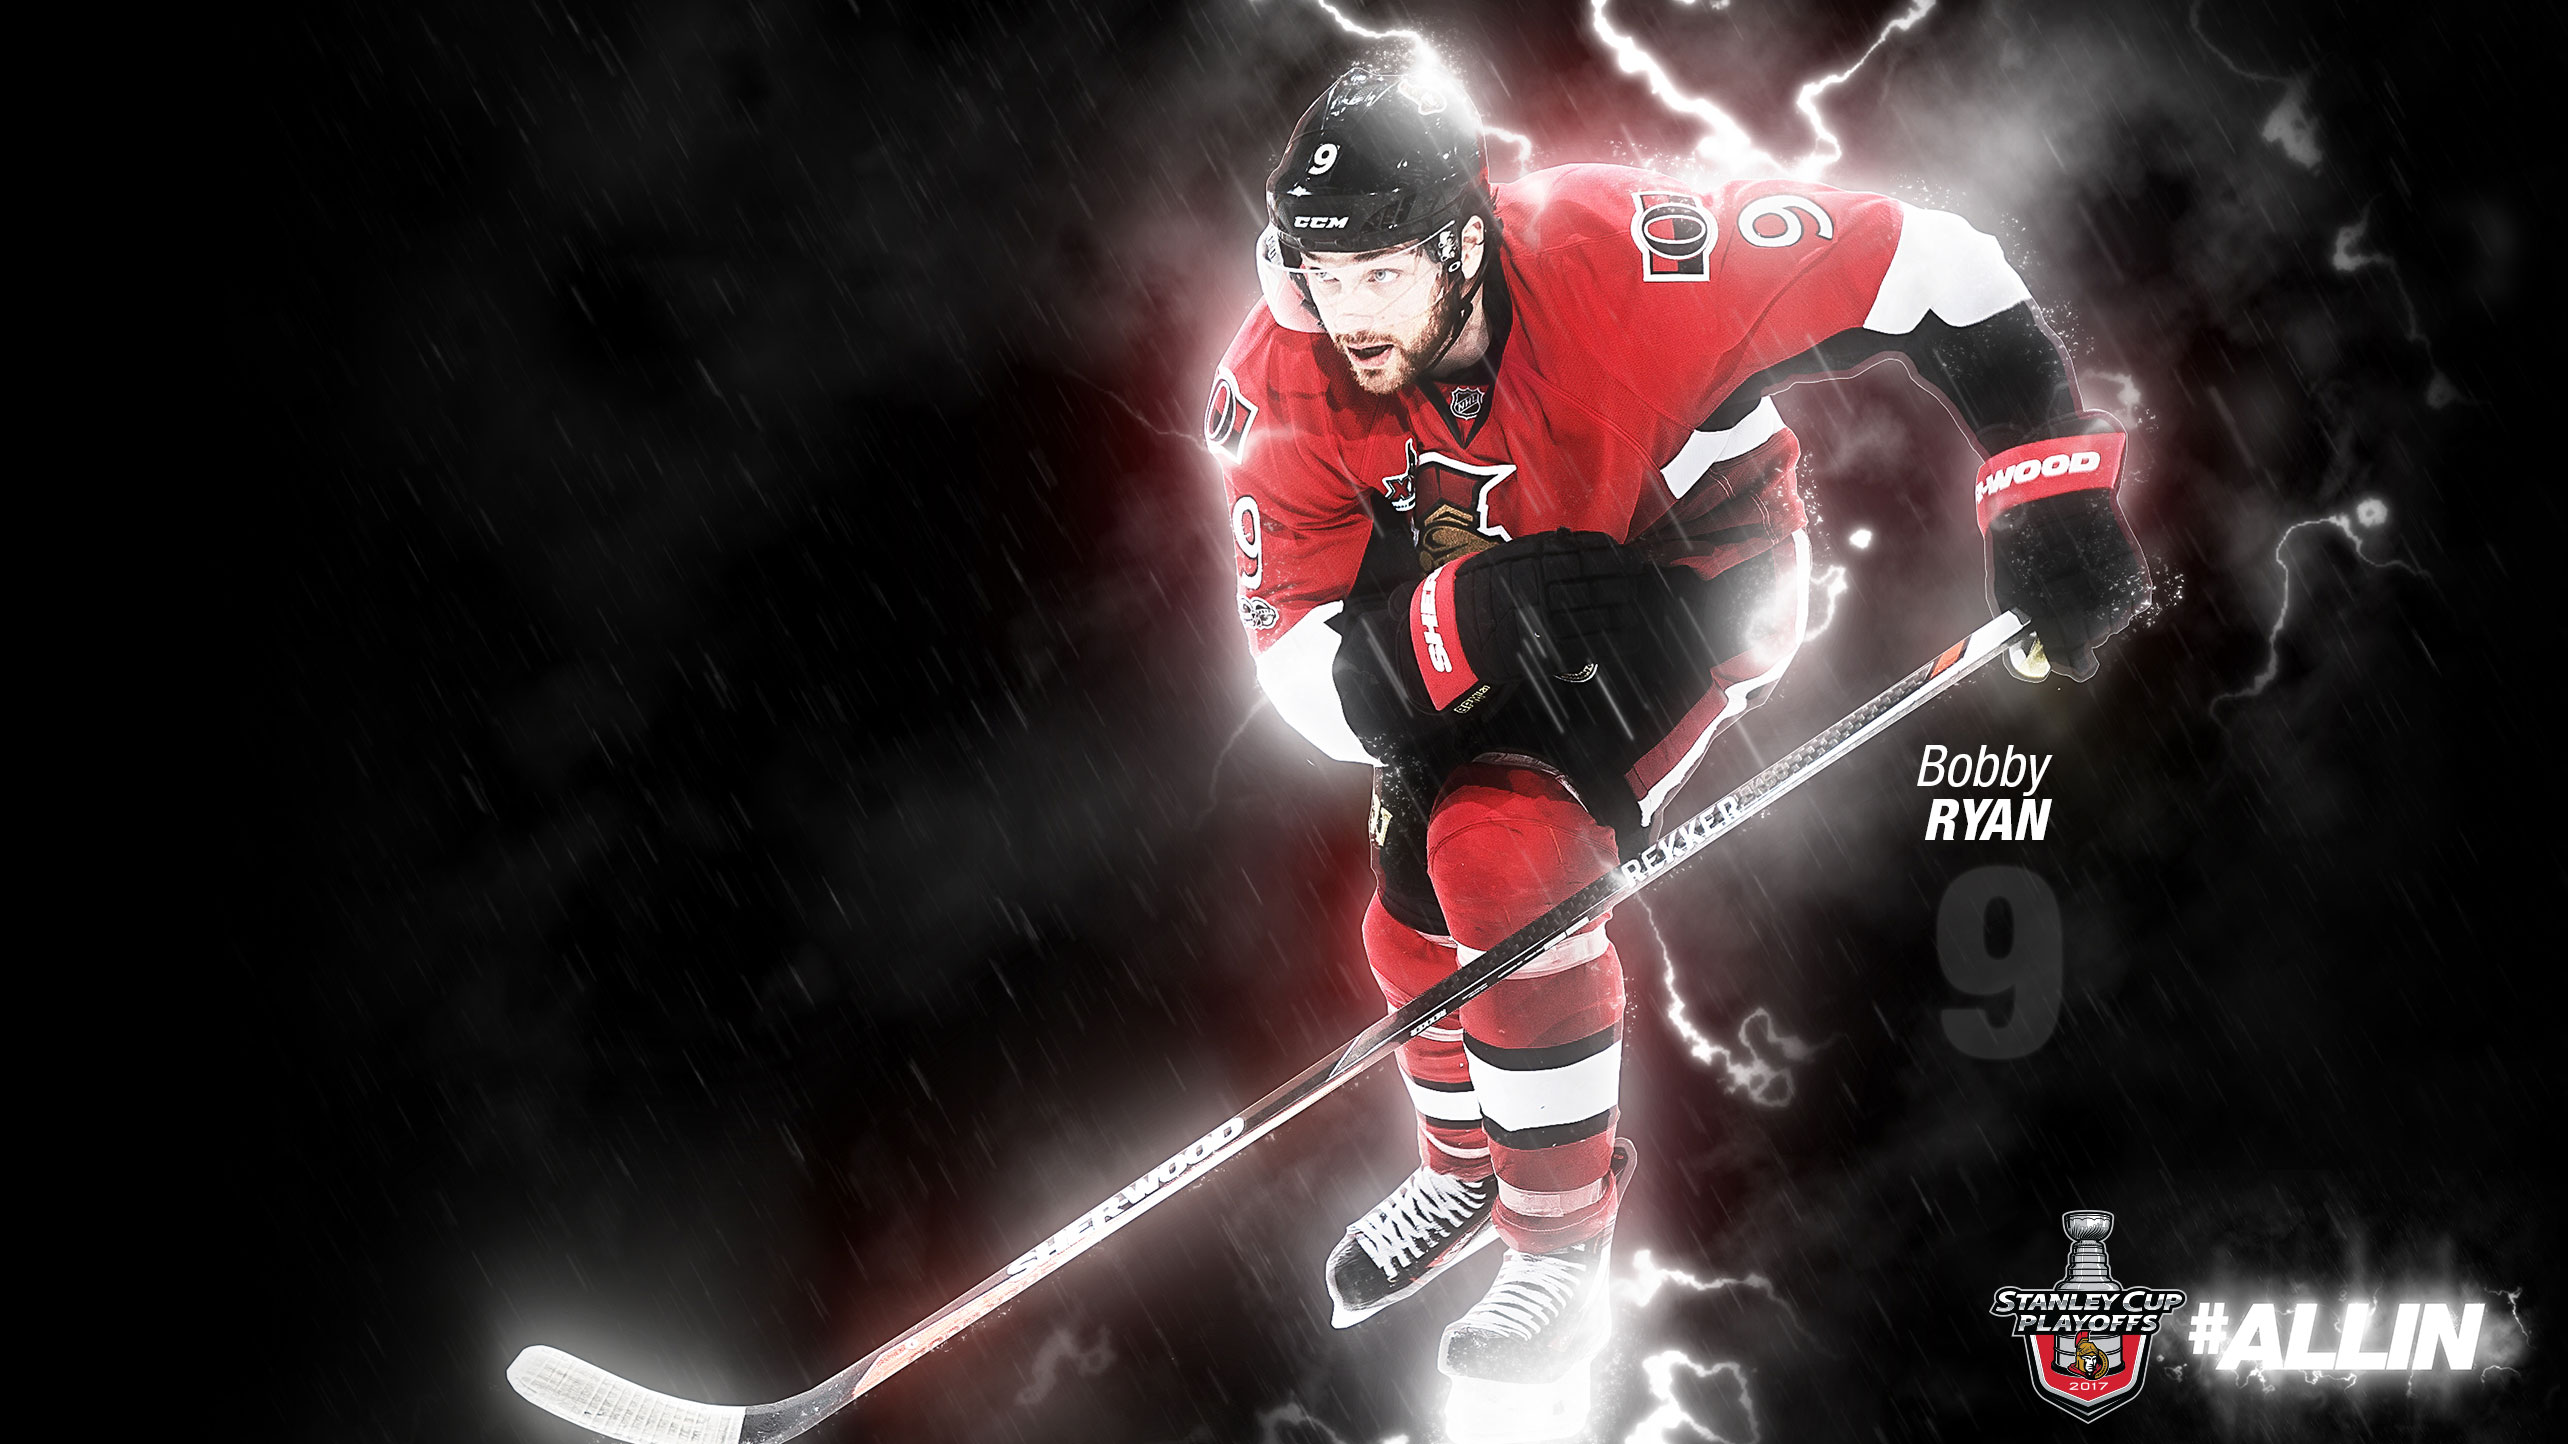 Ryan Williams Pc Background: Wallpapers And Backgrounds